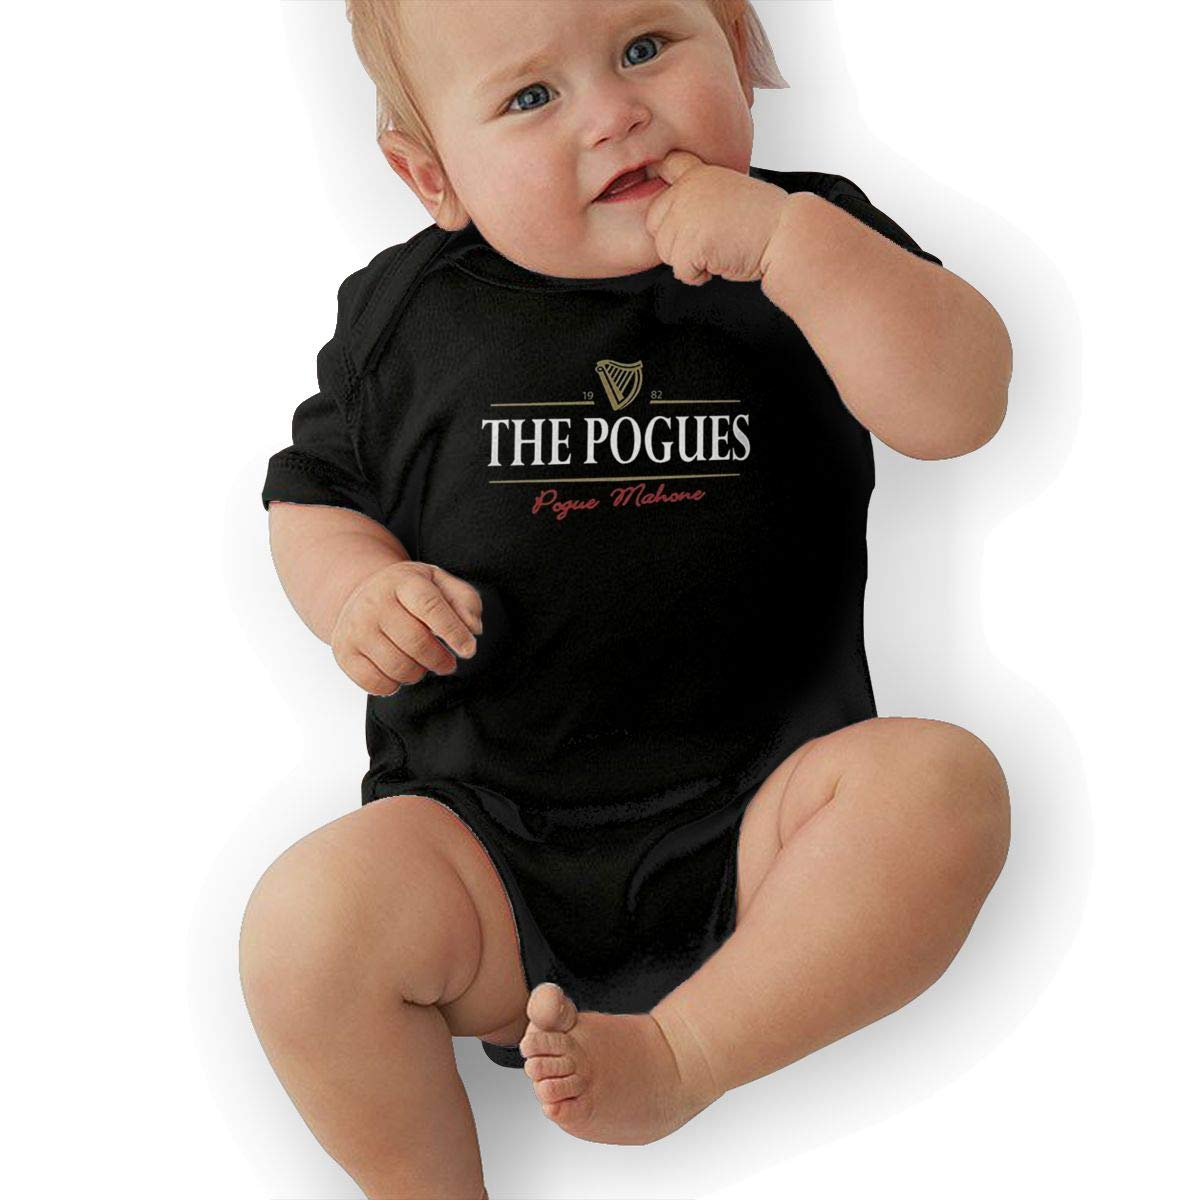 Kids Baby Short Sleeve Romper The-Pogues-Generic Unisex Cotton Cute Jumpsuit Baby Crawler Clothes